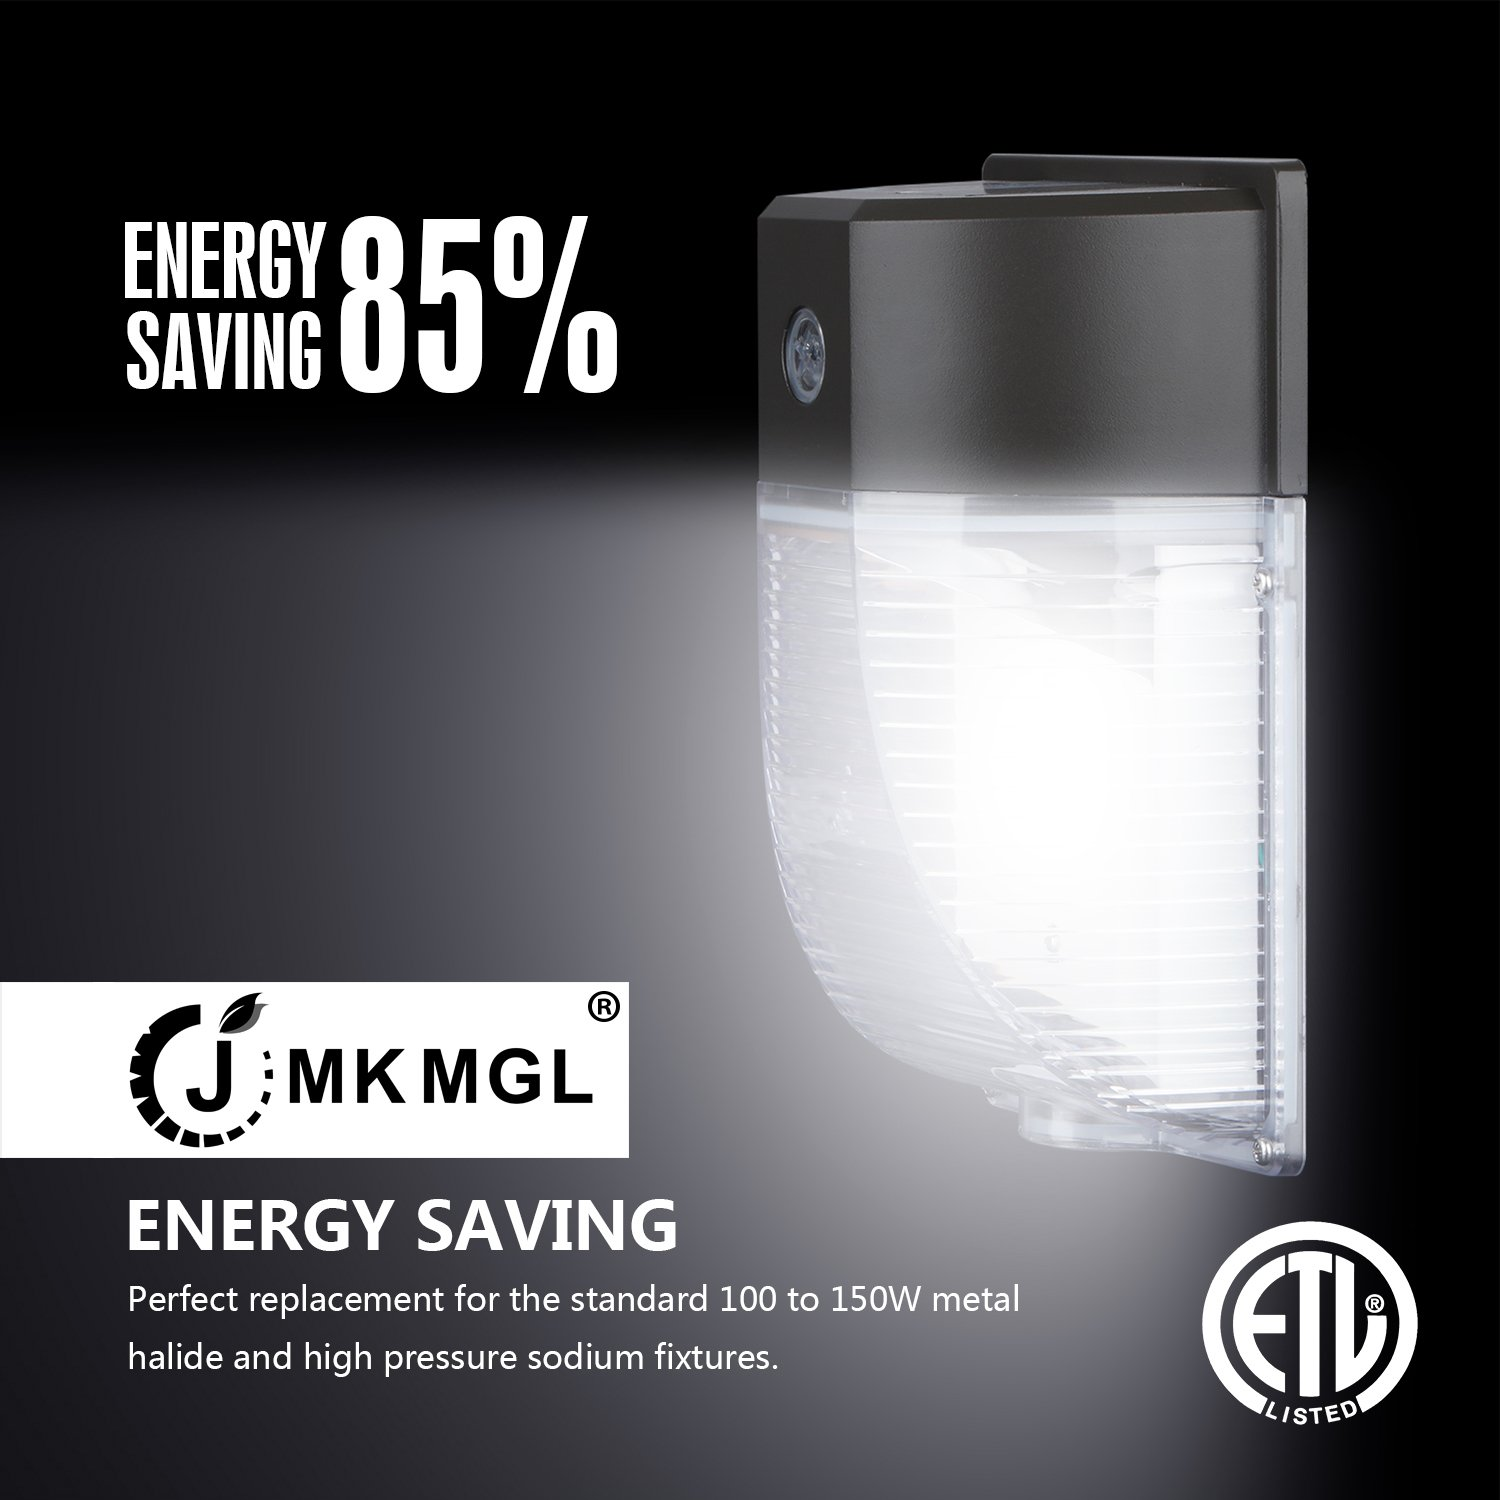 JMKMGL 18W LED Wall Pack Light,With Photocell Dusk to Dawn,2000lm 5000K,100-150W MH/HPS Replacement,100 to 277Vac,IP65 Waterproof,Outdoor Security Lighting,ETL Listed(Bronze Glossy Finished)